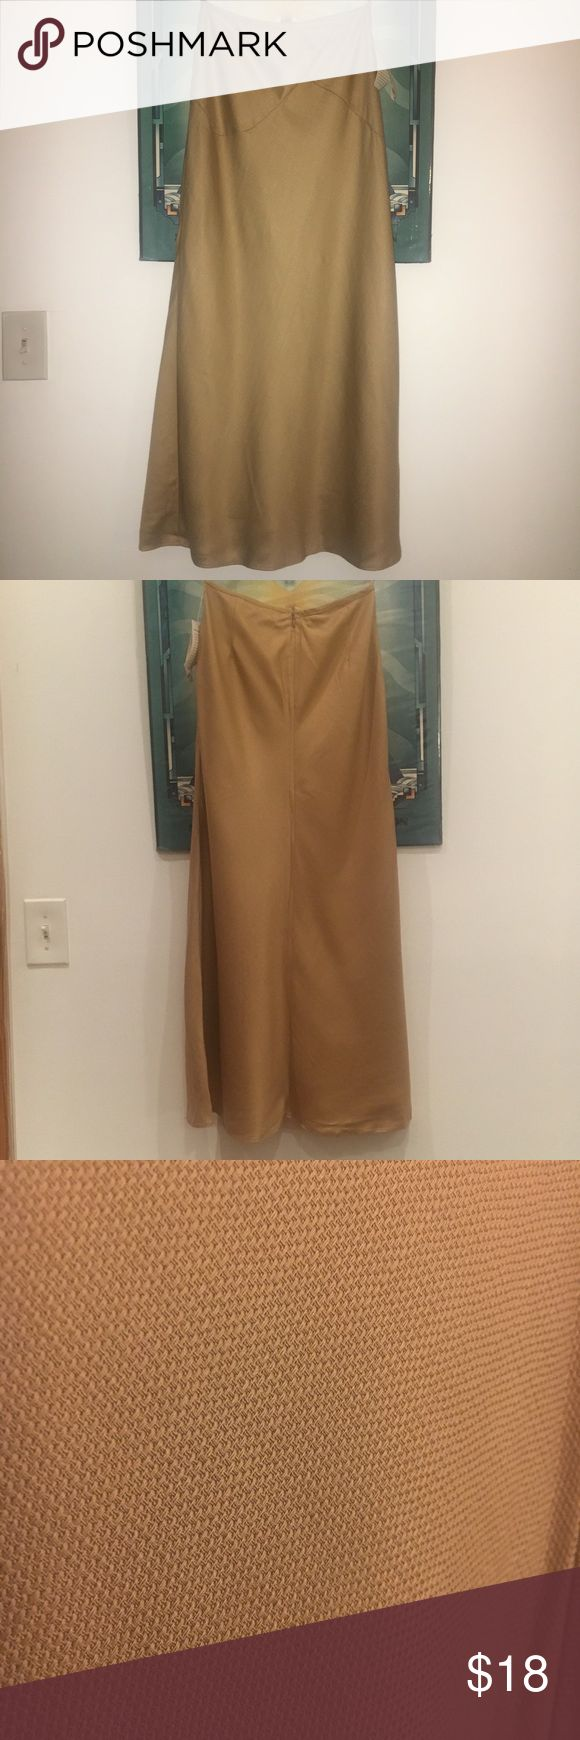 "NWT Uniqlo maxi skirt Light gold/khaki colored high waisted maxi skirt from Uniqlo. Size 0. Back zip, fully lined, textured fabric- 100% lyocell.   I exchanged something from Uniqlo for this and realized it didnt fit after the return date! 😫  Skirt measures 36"" in length, waist 13"" lying flat. Uniqlo Skirts Maxi"